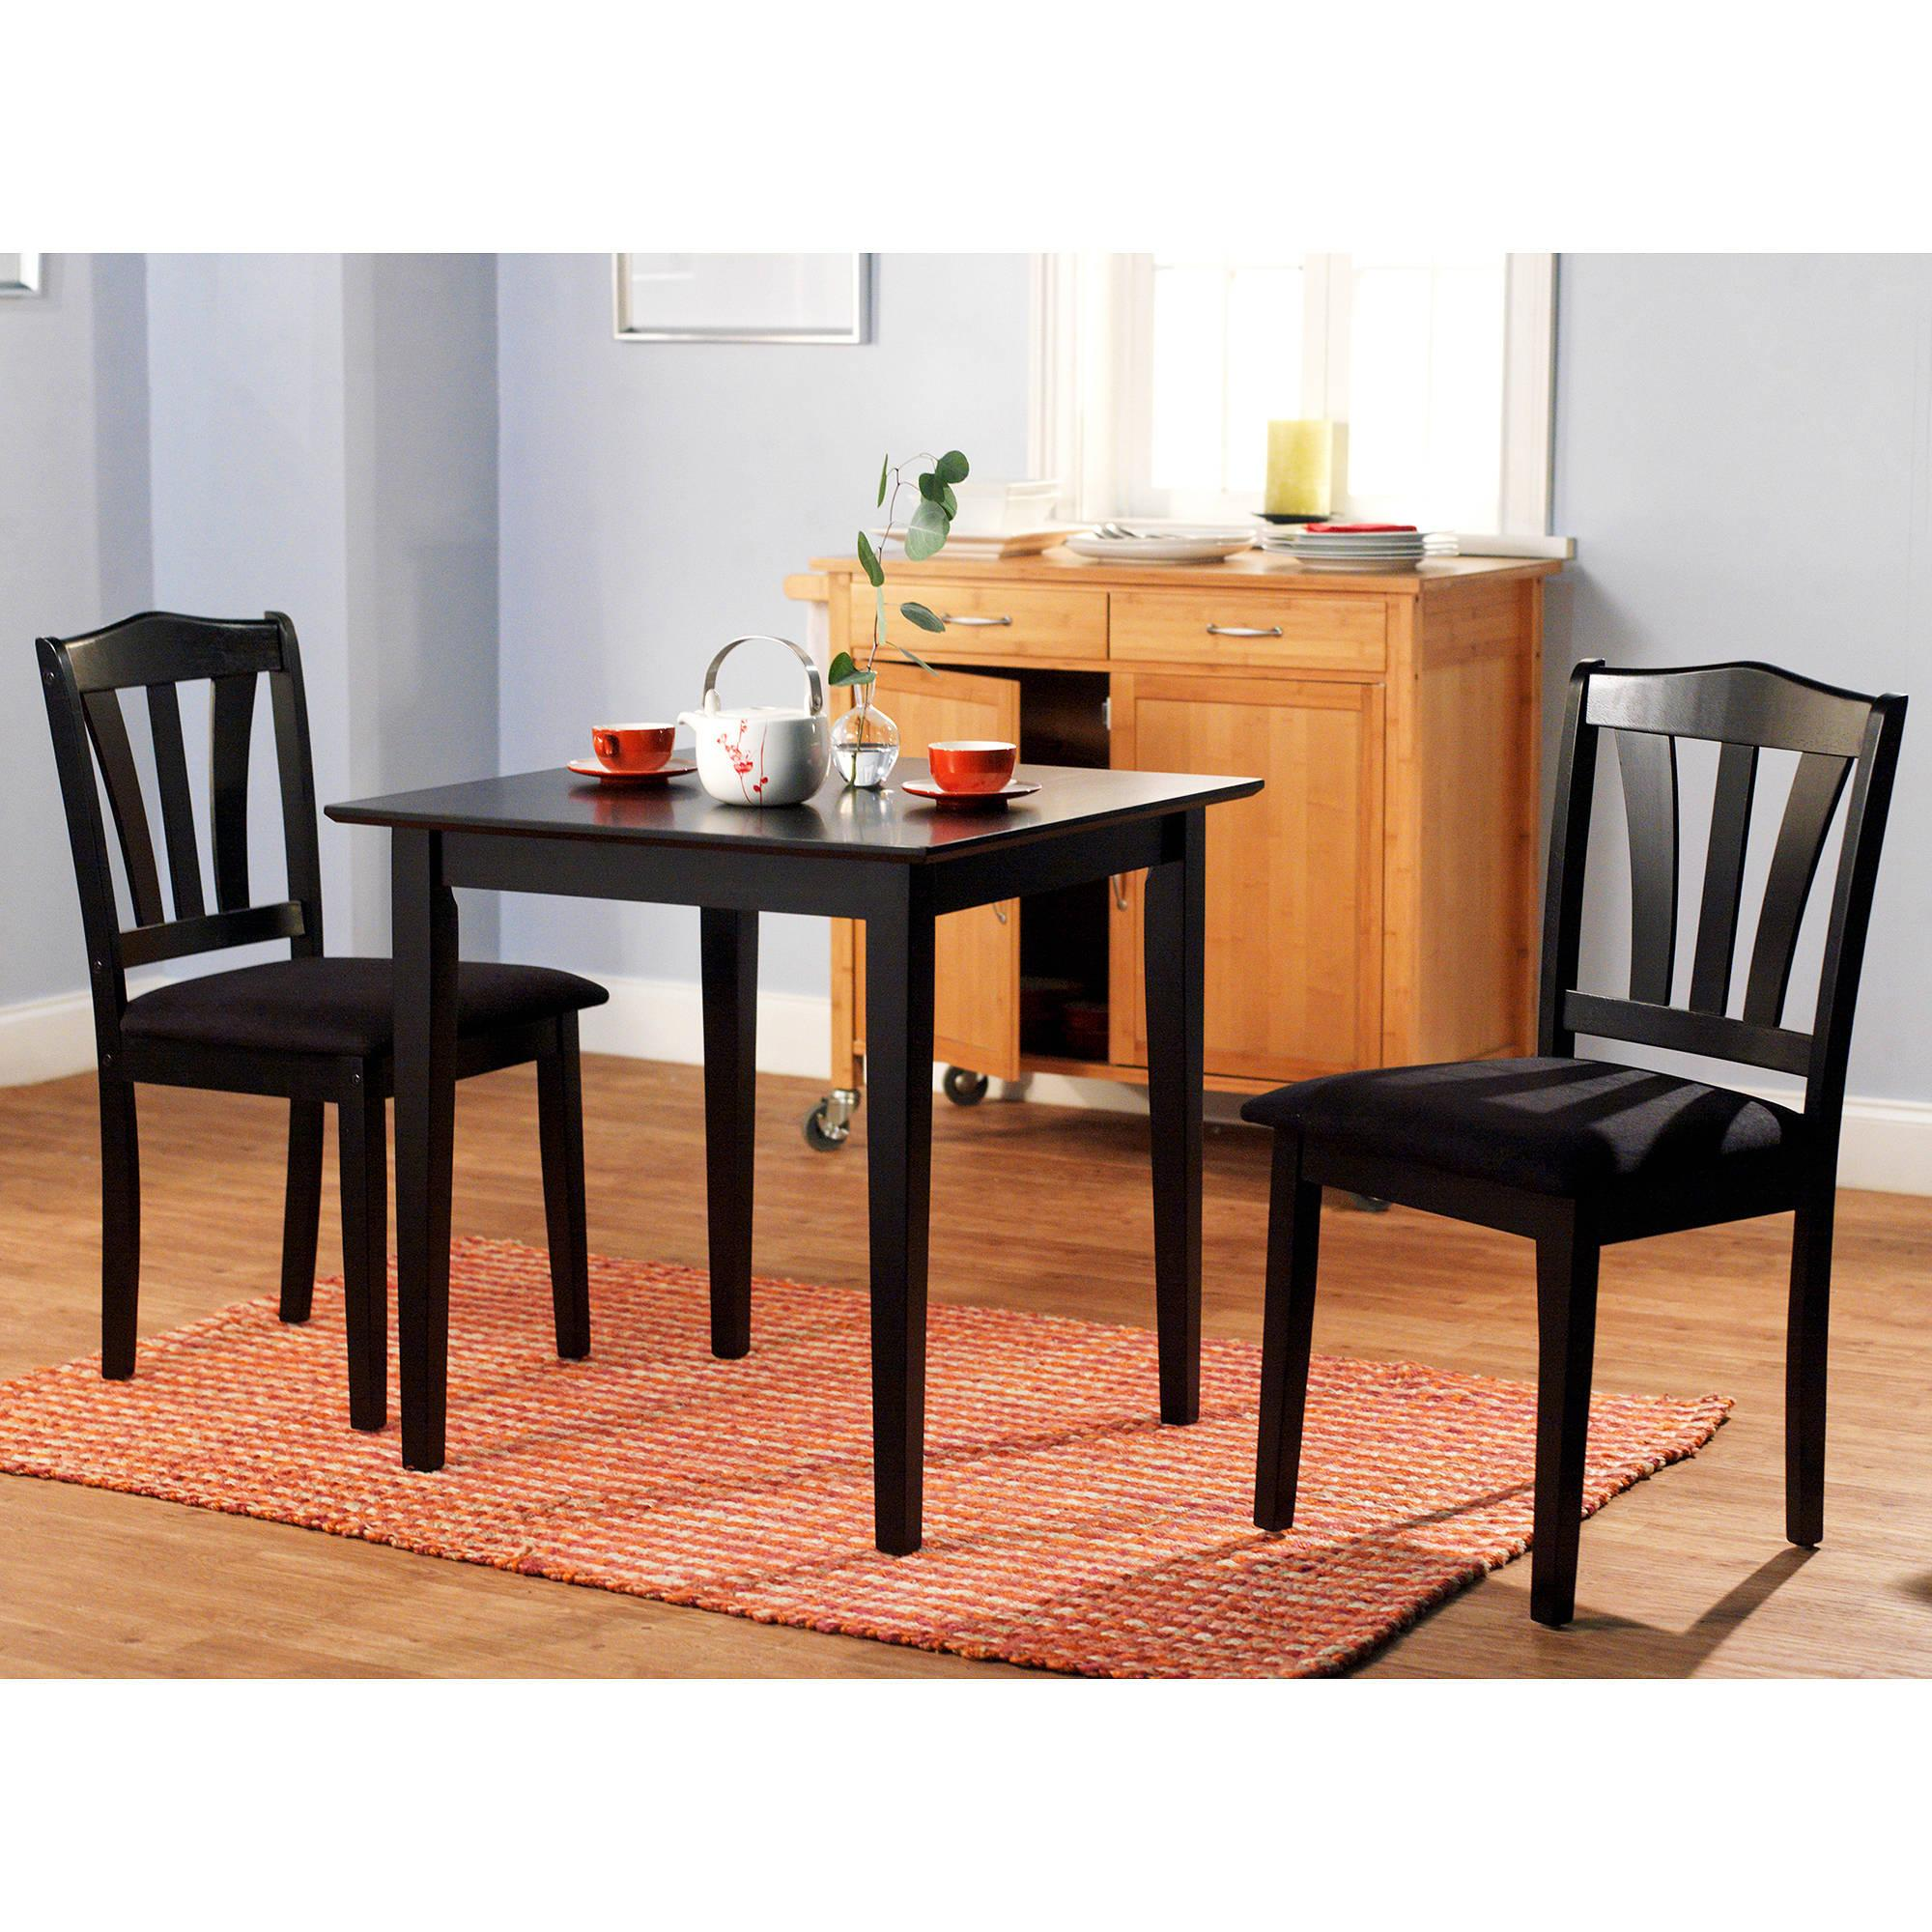 3 piece dining set table 2 chairs kitchen room wood for Kitchen dining sets